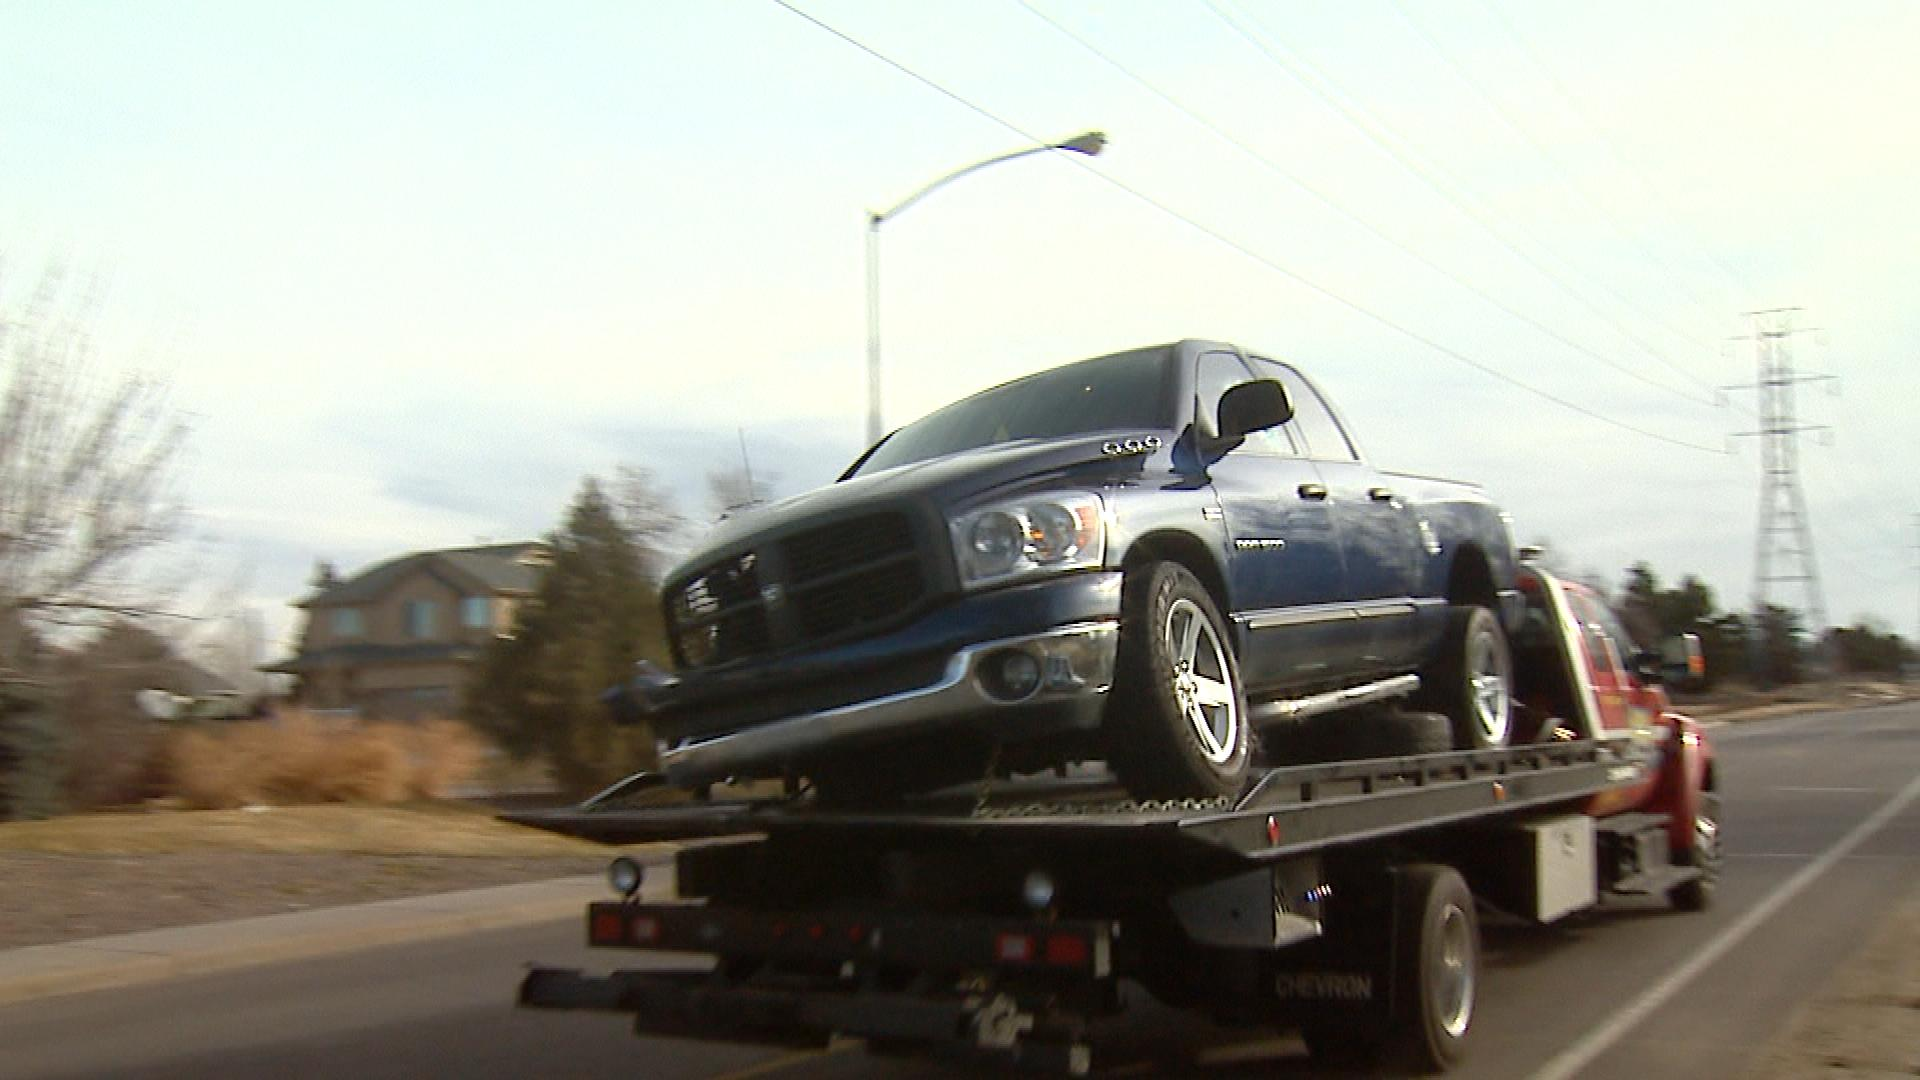 The truck involved in the crash (credit: CBS)